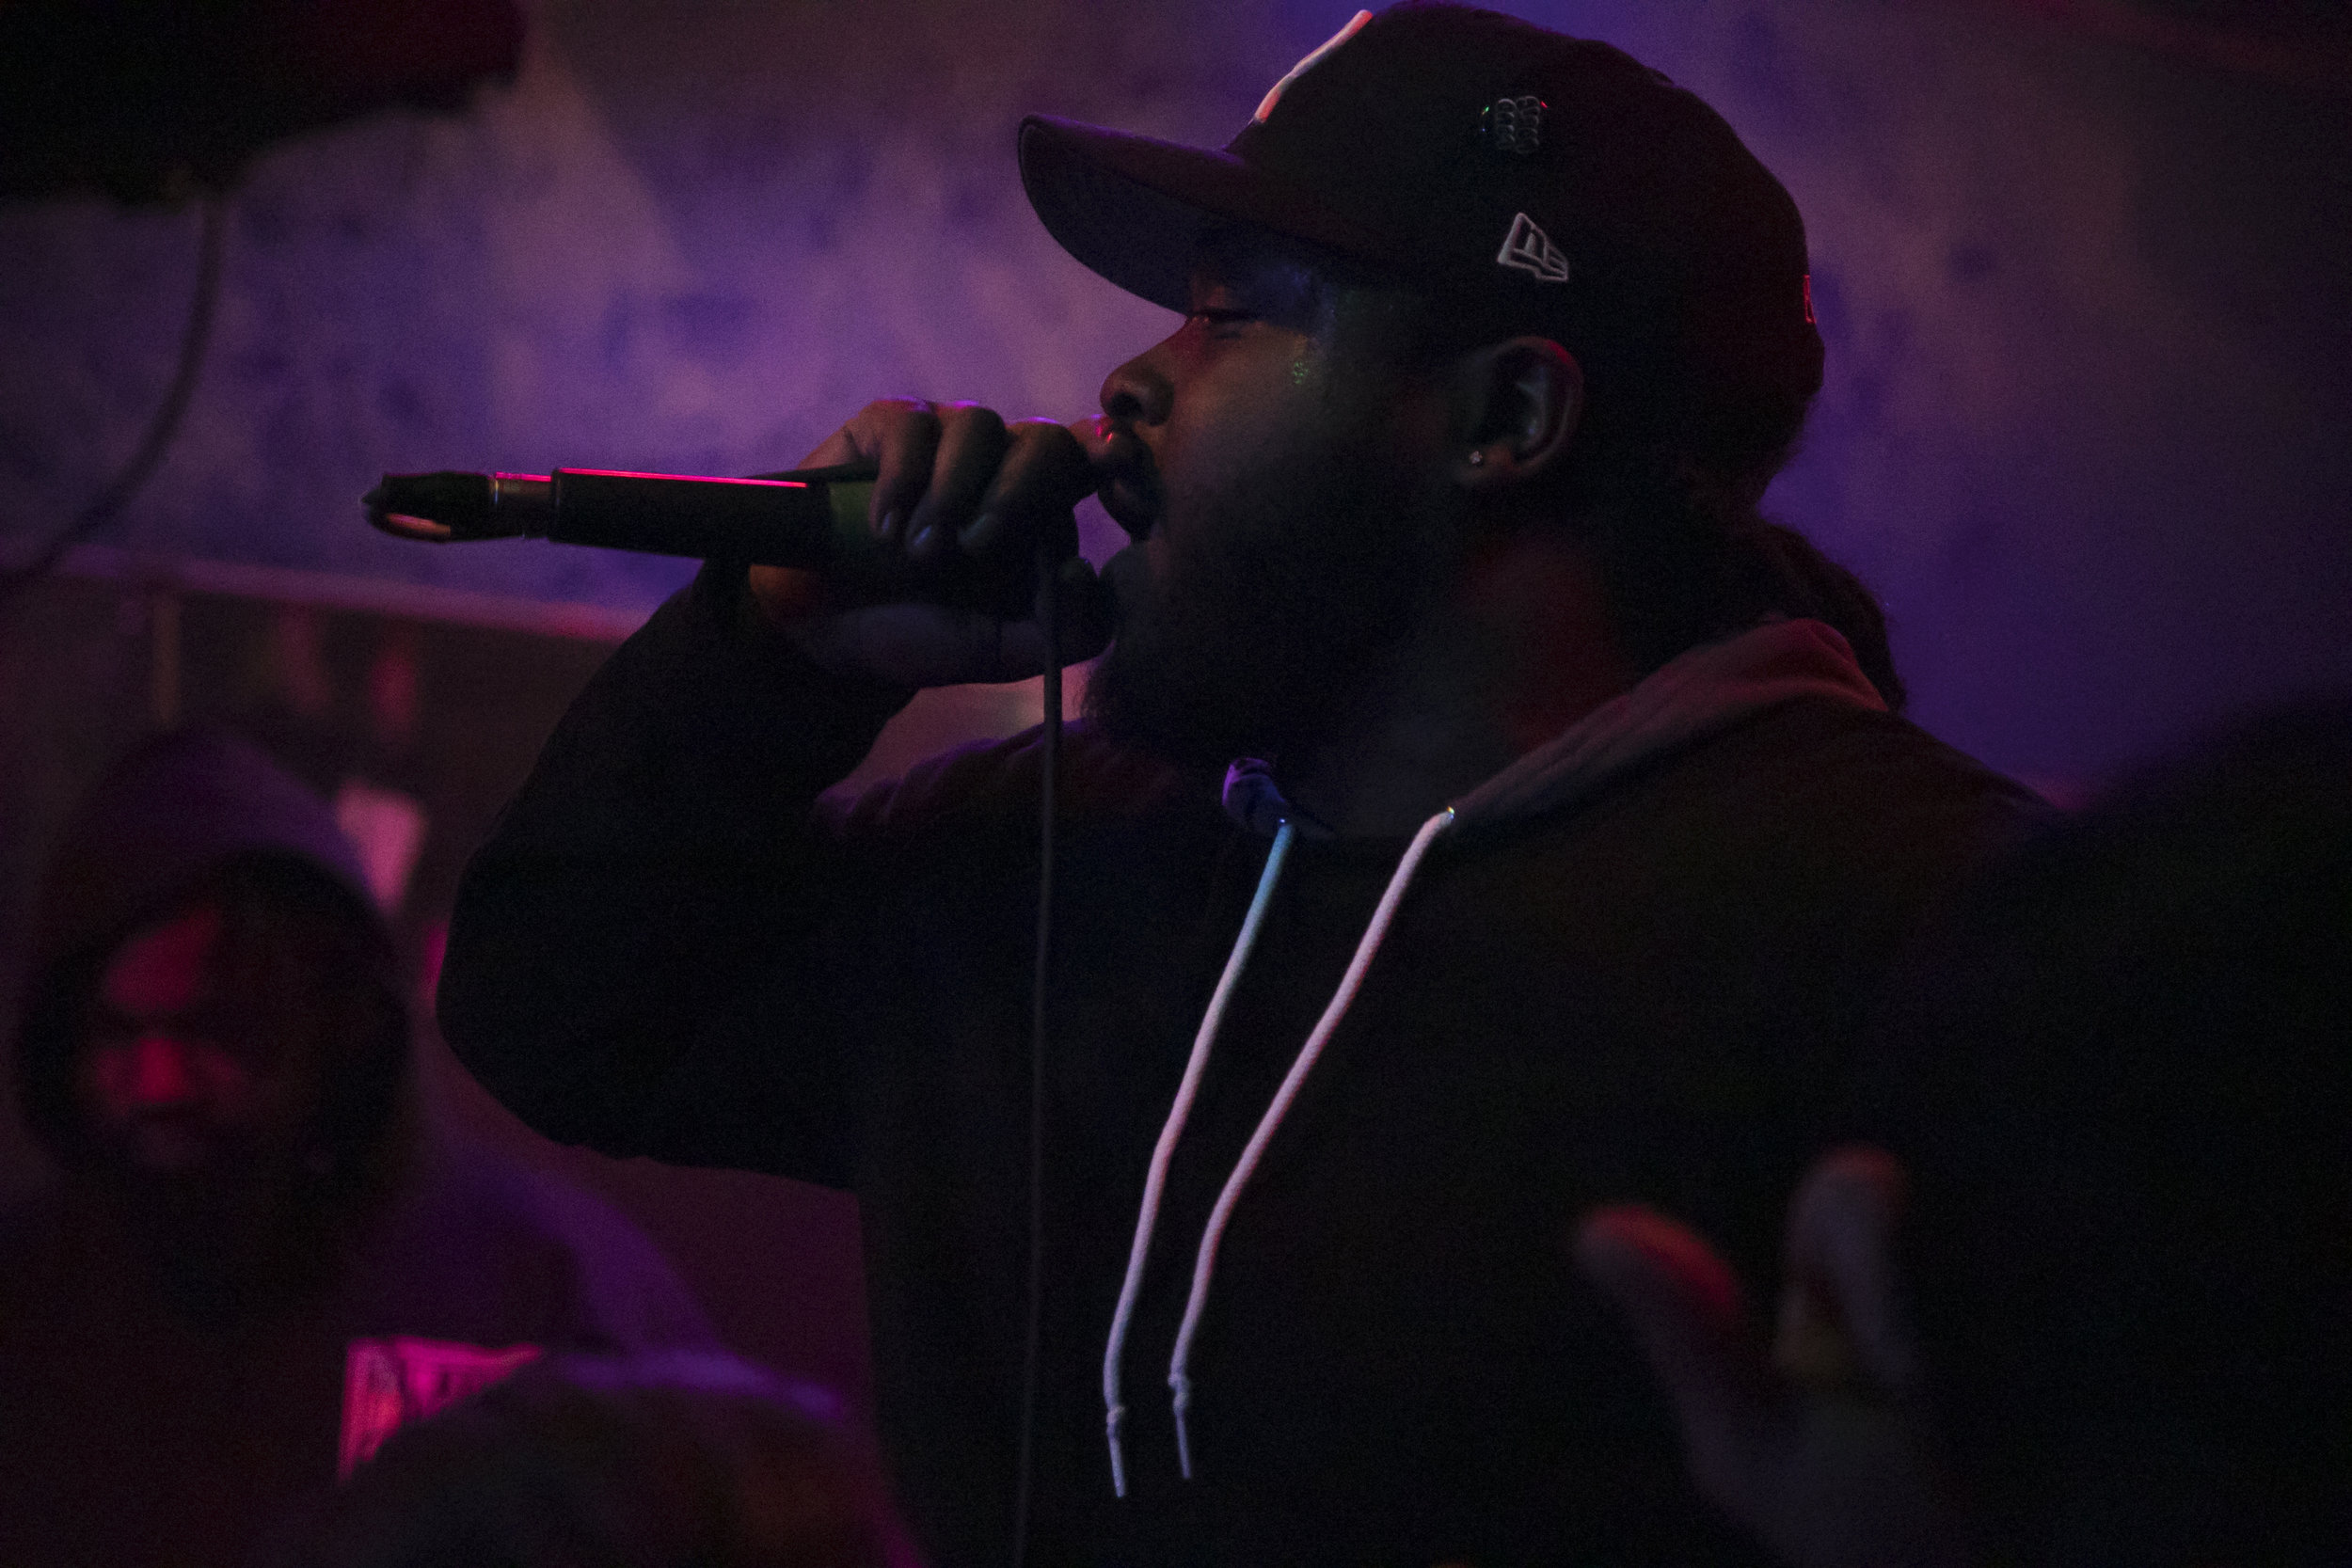 Michael Millions performs live at Wonderland RVA on February 28, 2019 in Downtown Richmond, Virginia. This was Mike's last stop on his Silkys and Switchblades Tour with fellow Richmond artist Nickelus F. The two artist performed at local venues throughout the south east United States for a month.